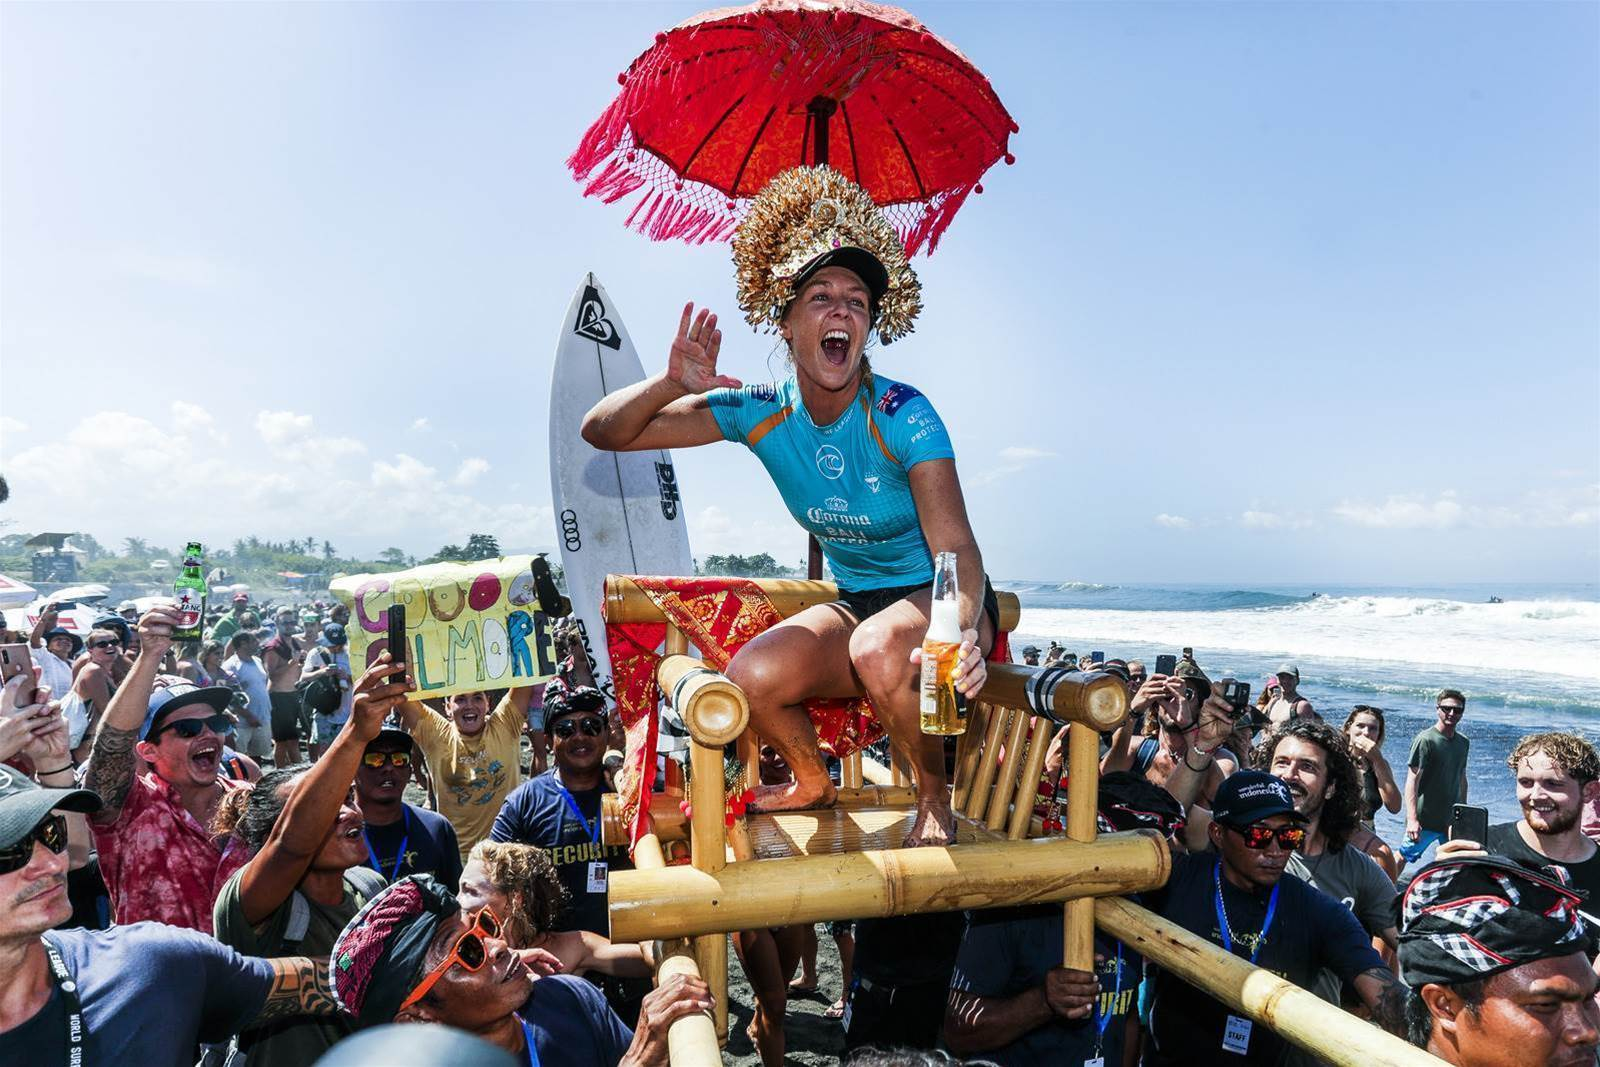 Kanoa Igarashi and Steph Gilmore Victorious in Bali